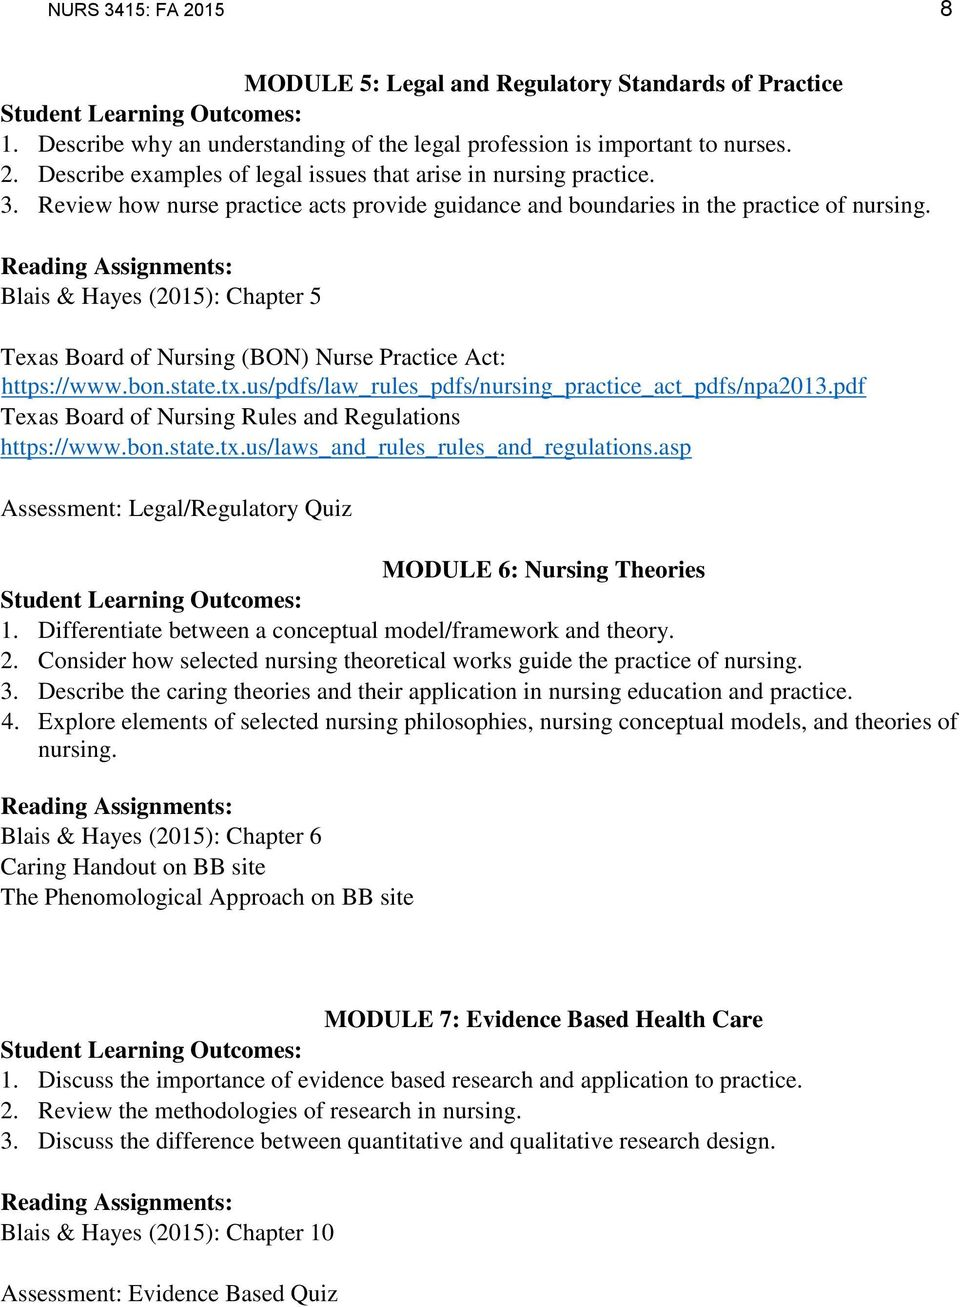 us/pdfs/law_rules_pdfs/nursing_practice_act_pdfs/npa2013.pdf Texas Board of Nursing Rules and Regulations https://www.bon.state.tx.us/laws_and_rules_rules_and_regulations.